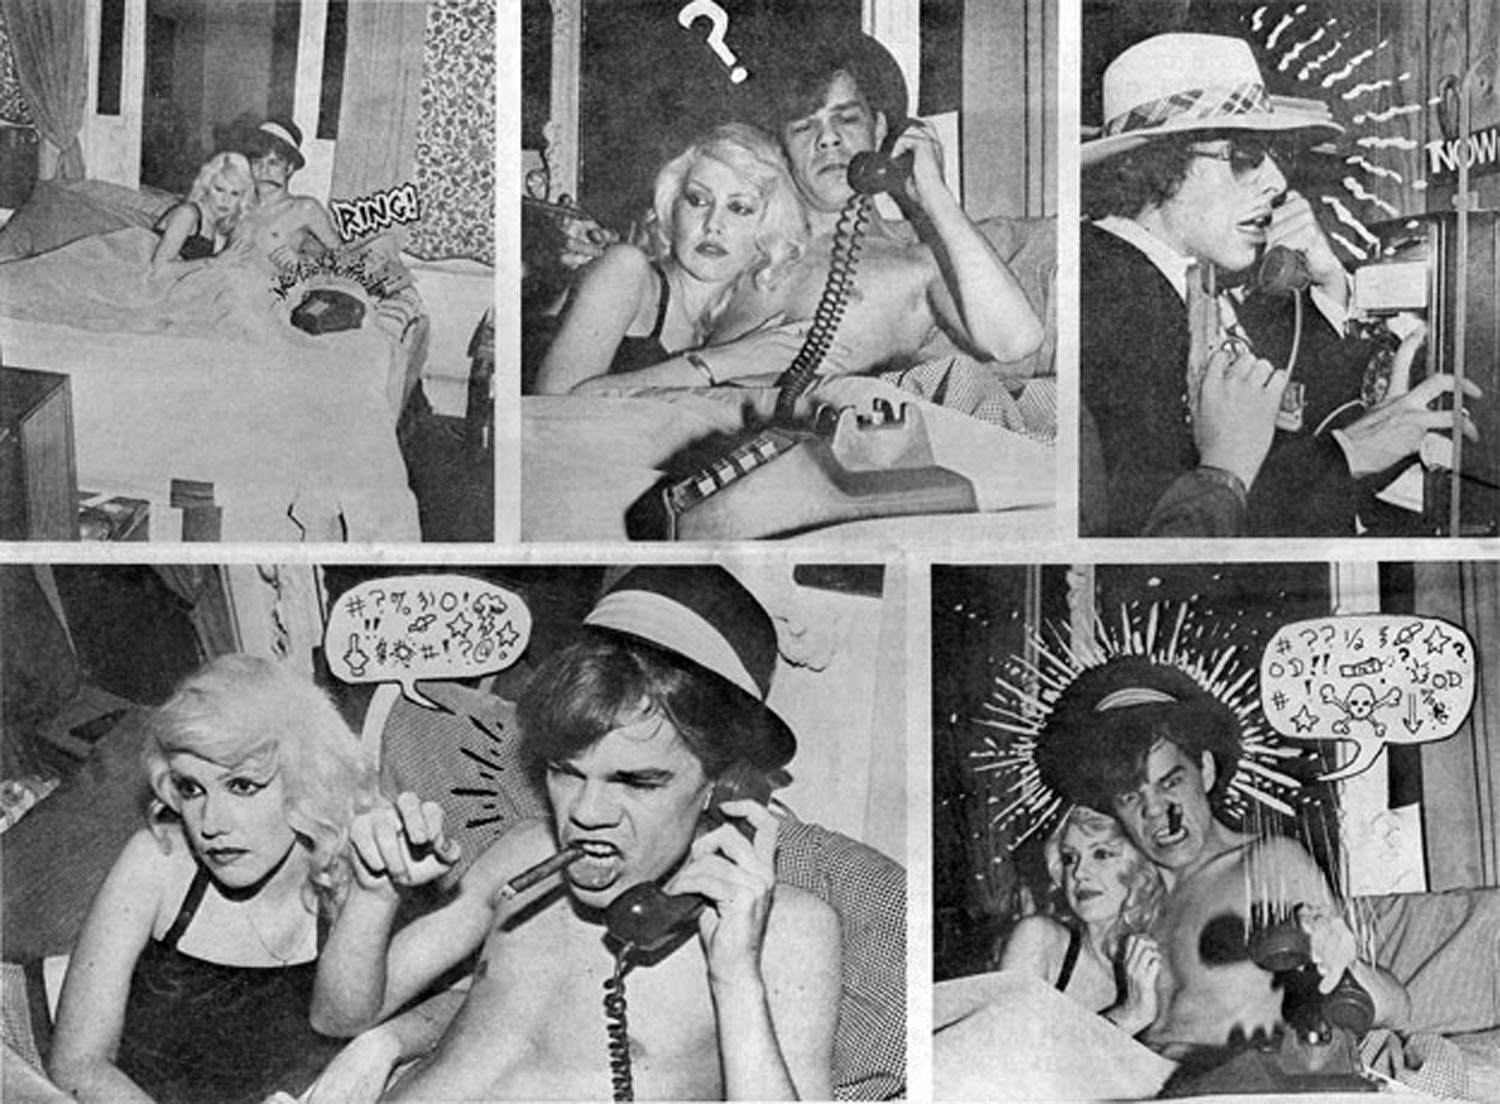 David Jo Hansen & Cyrinda Fox in The Legend of Nick Detroit, Punk Magazine, Issue 6, October 1976  The Legend of Nick Detroit Written & Directed by Legs McNeil Editing & Special Effects: John Holmstrom Assistant Director and Director of Photography: Roberta Bayley